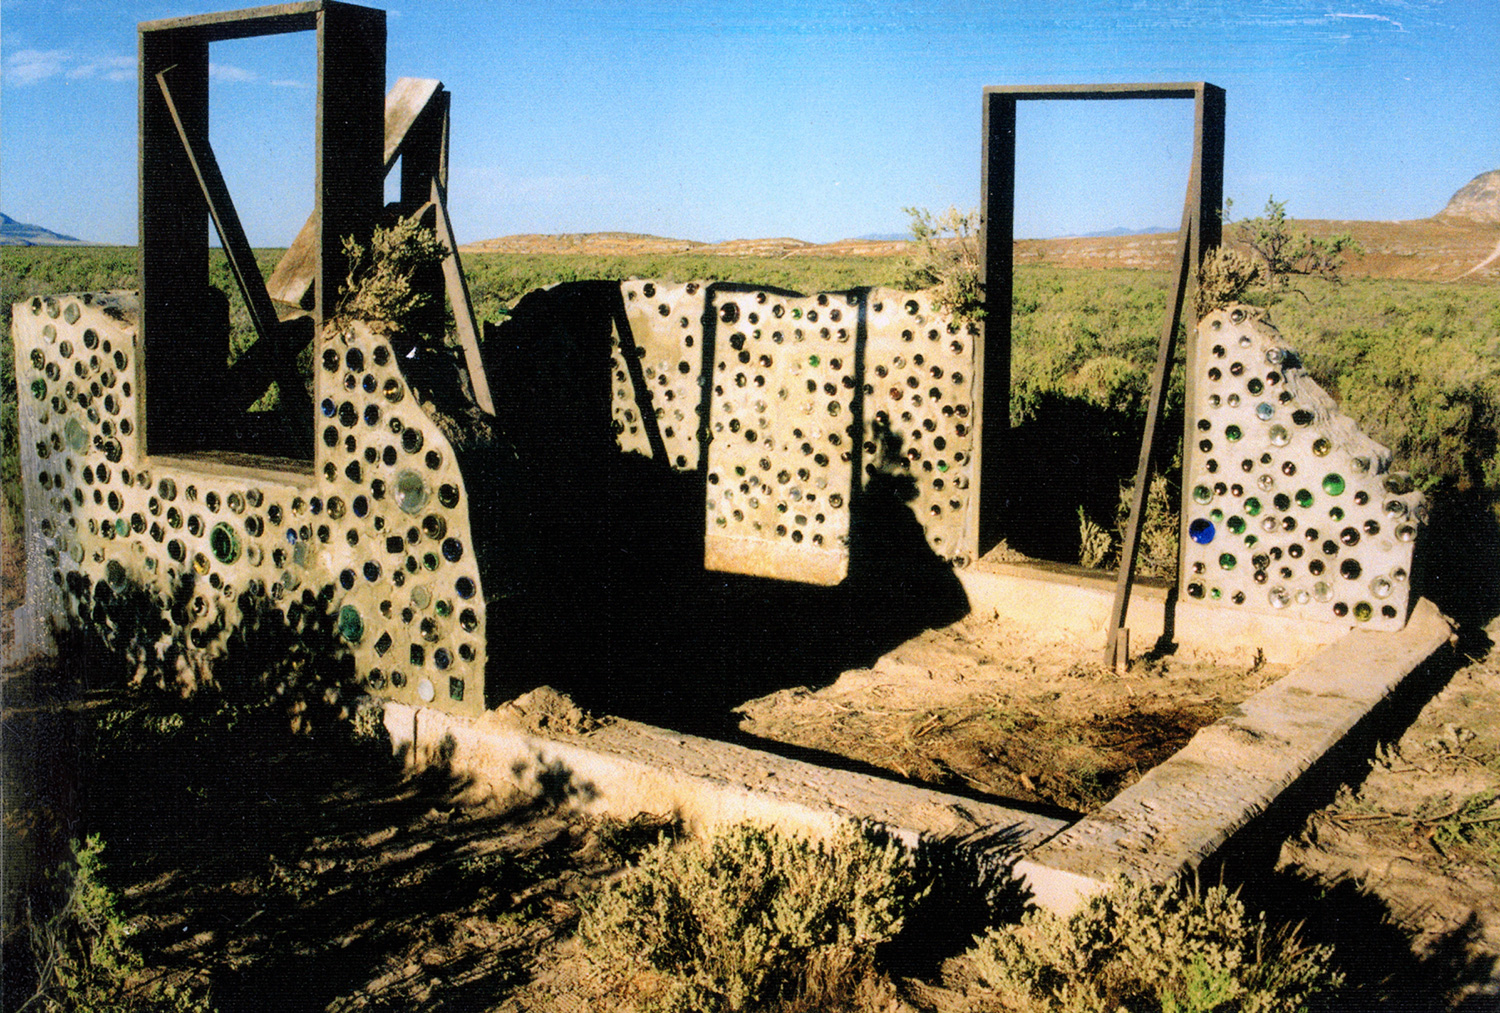 """The """"Bottle House"""" was a multi-staged set piece set in the bleak desertthat helped describe the arc from youthful optimism to neglect toeventual abandonment."""